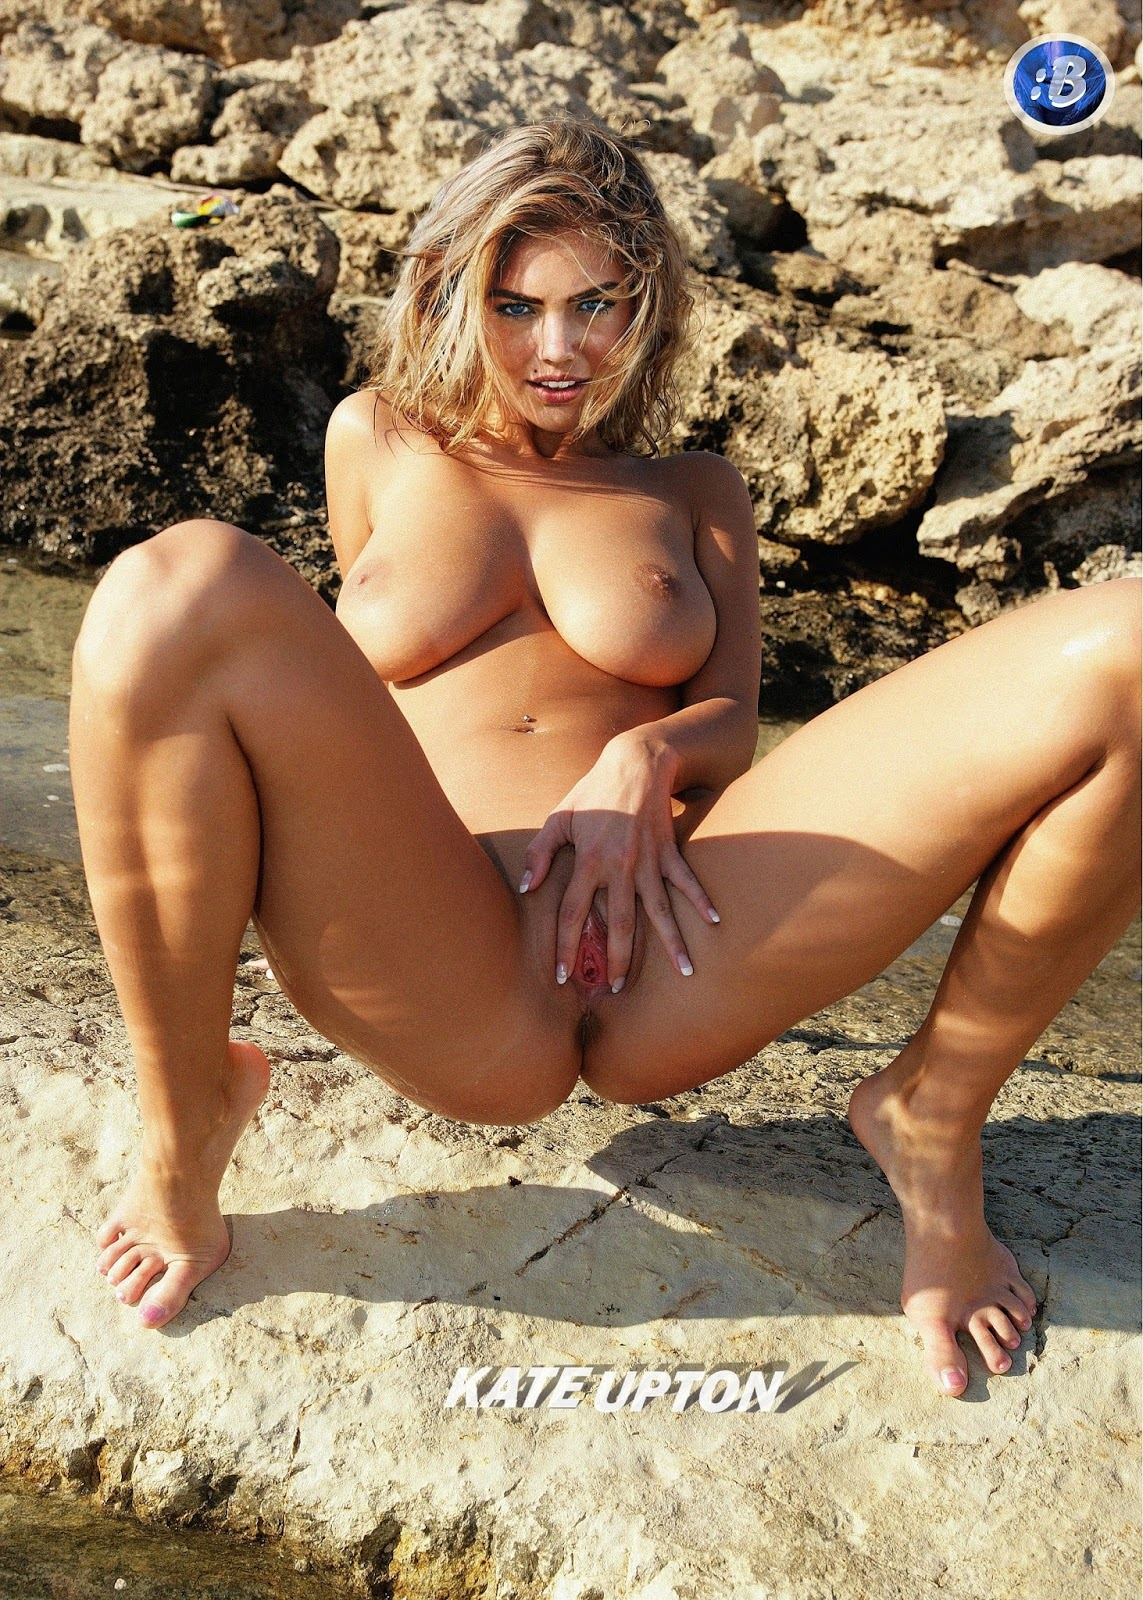 Sorry, Pics of kate upton naked